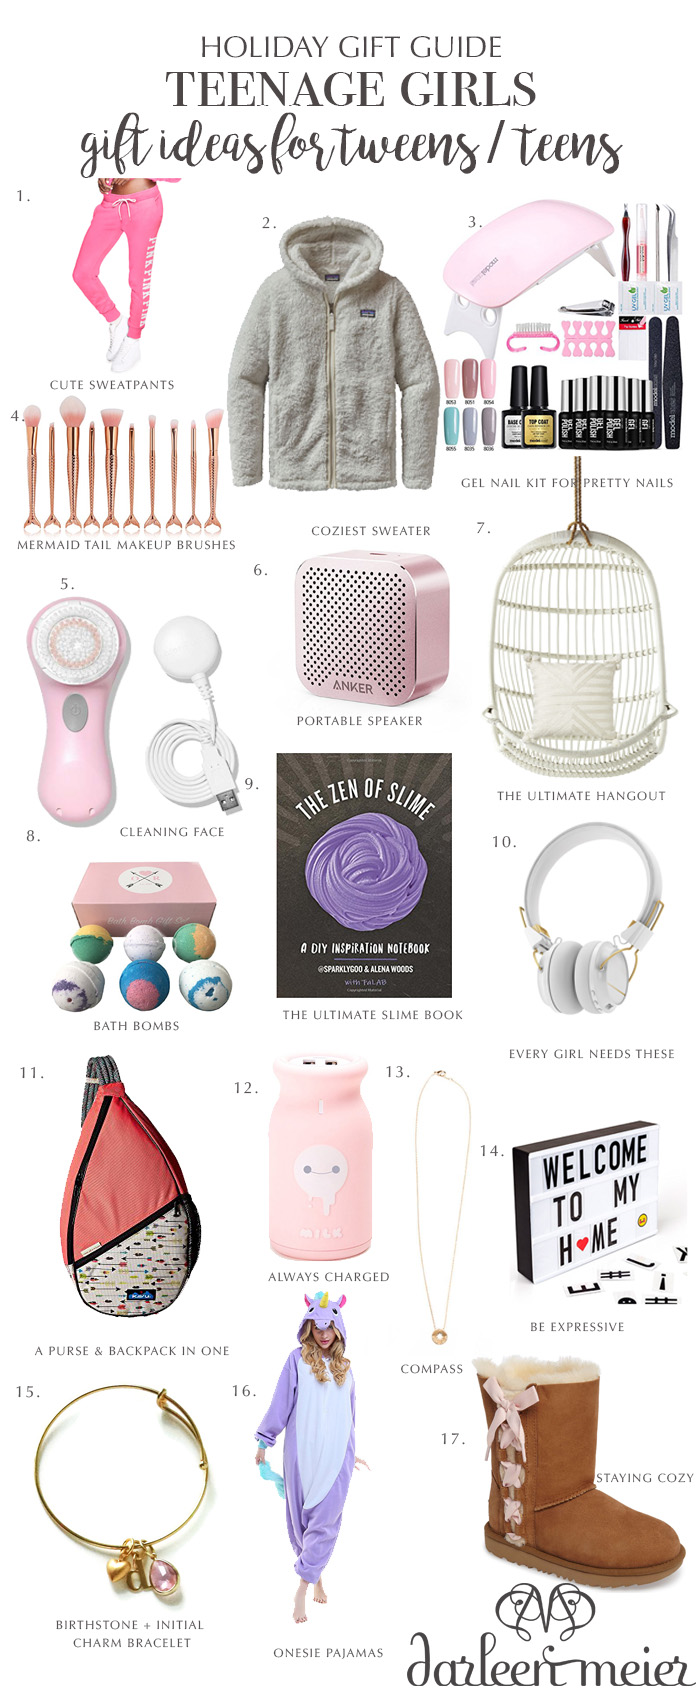 Holiday gift guide for teenage girls, gift ideas for Tweens, gift ideas holiday presents for teen girlie, holiday present ideas, gift guide for girls, gift guide for young teens, gift for teen girls, girls, young women